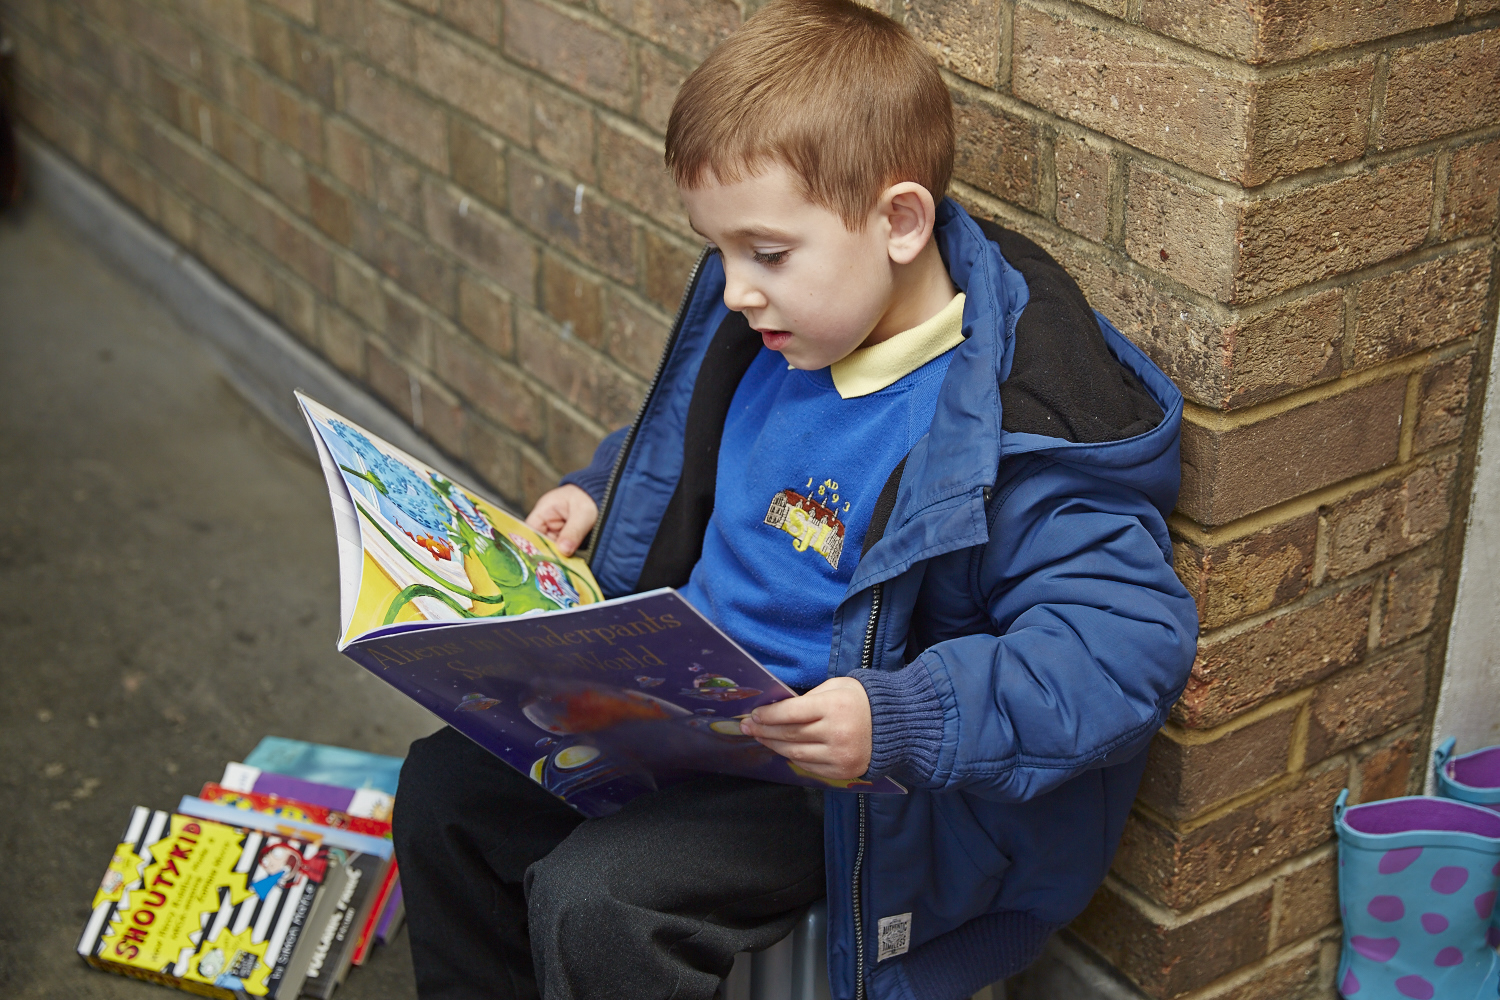 Doorstep Library's weekly e-visits